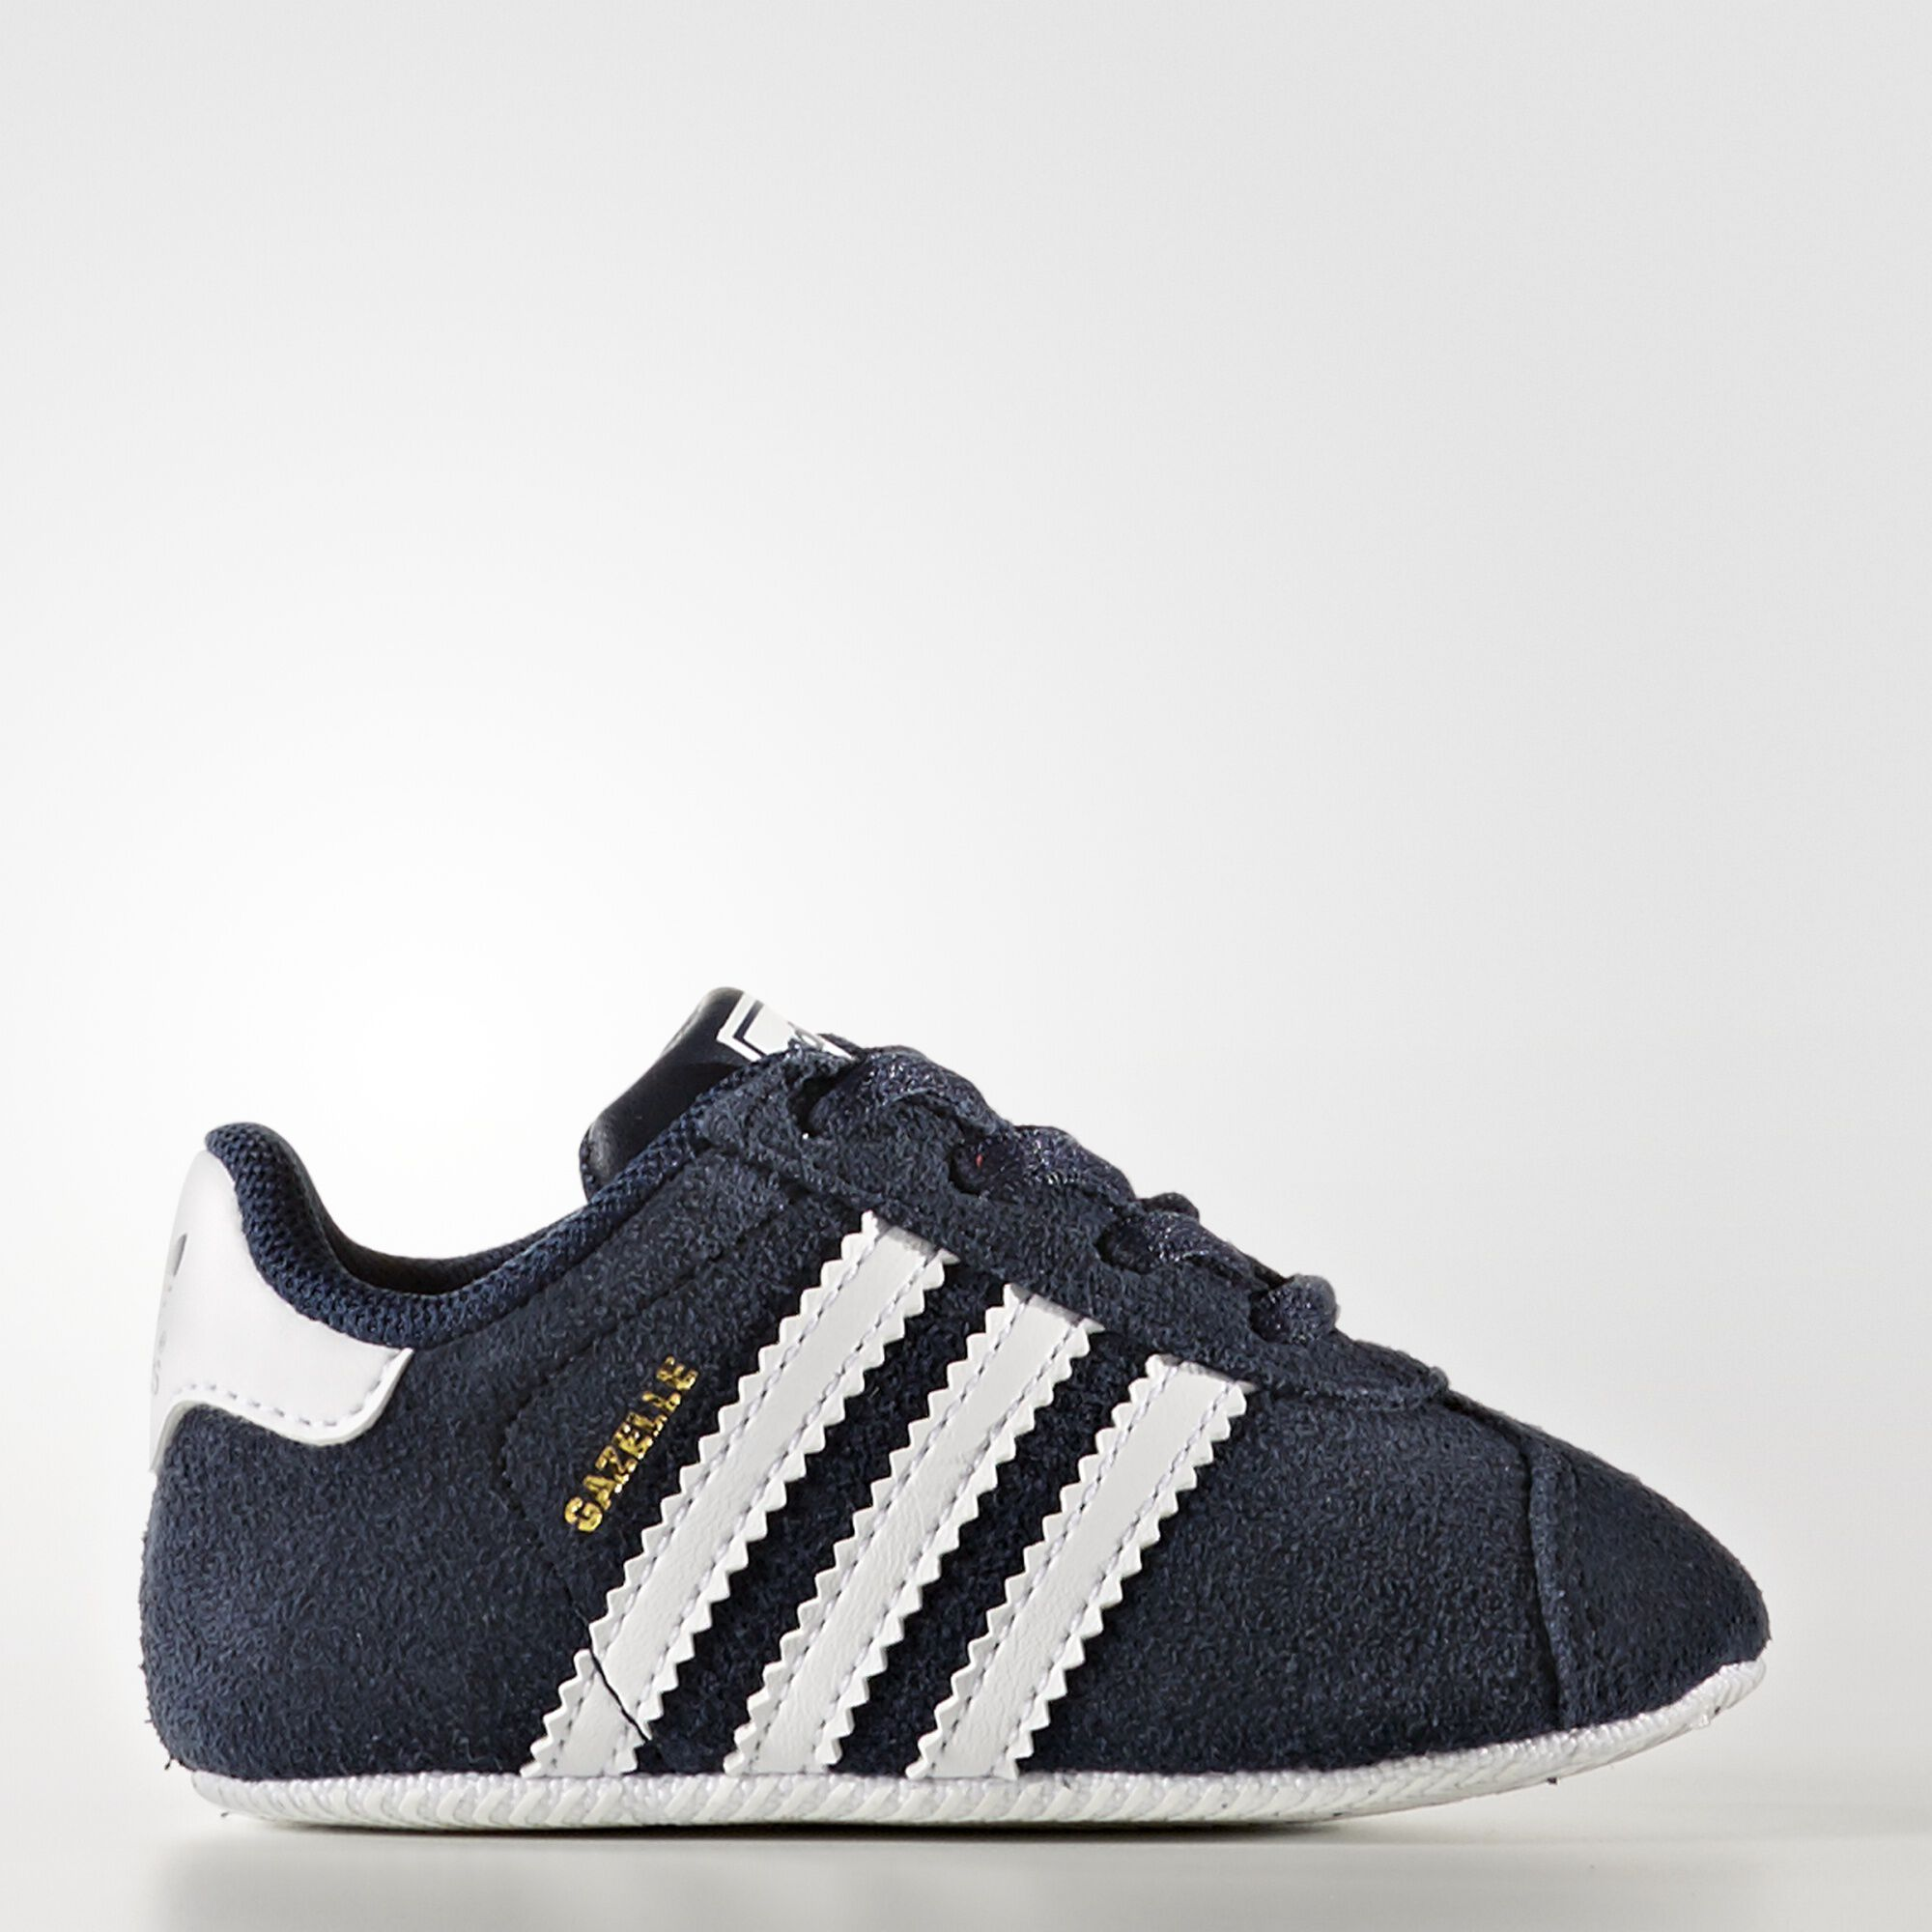 Buy adidas all black gazelle   OFF71% Discounted 740a43290f0a7